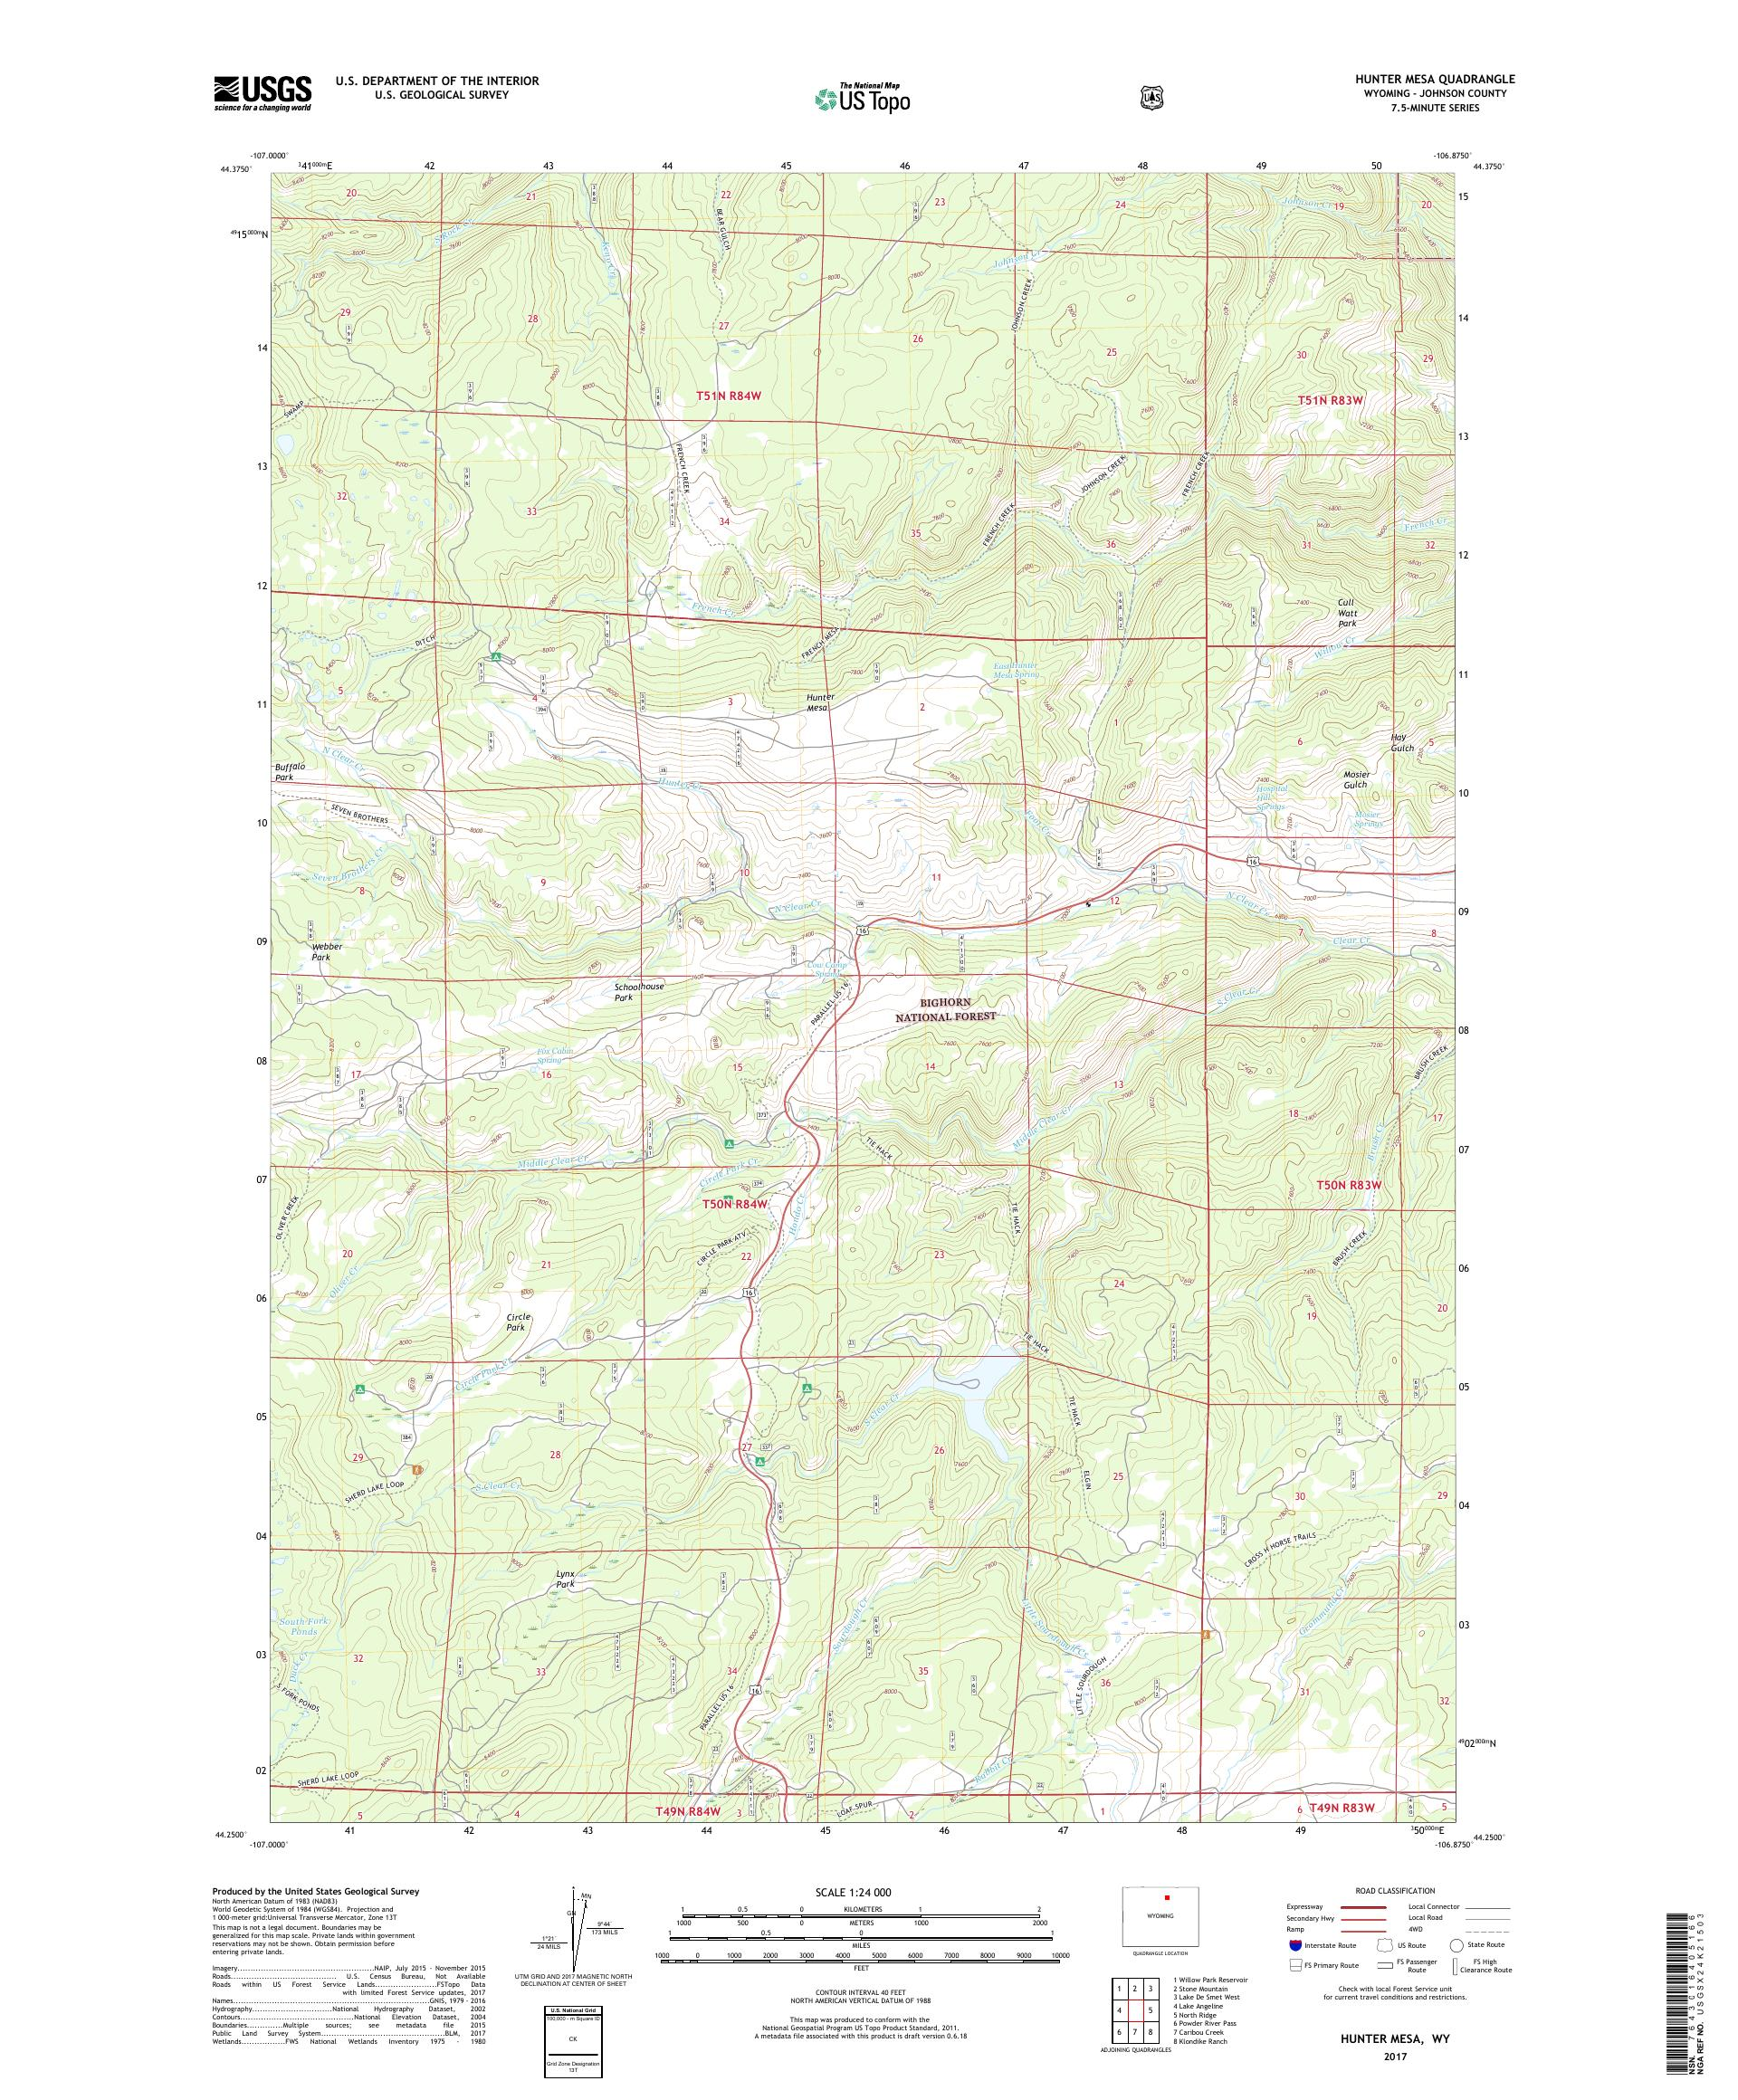 MyTopo Hunter Mesa, Wyoming USGS Quad Topo Map on map dallas, map wings, map navy,